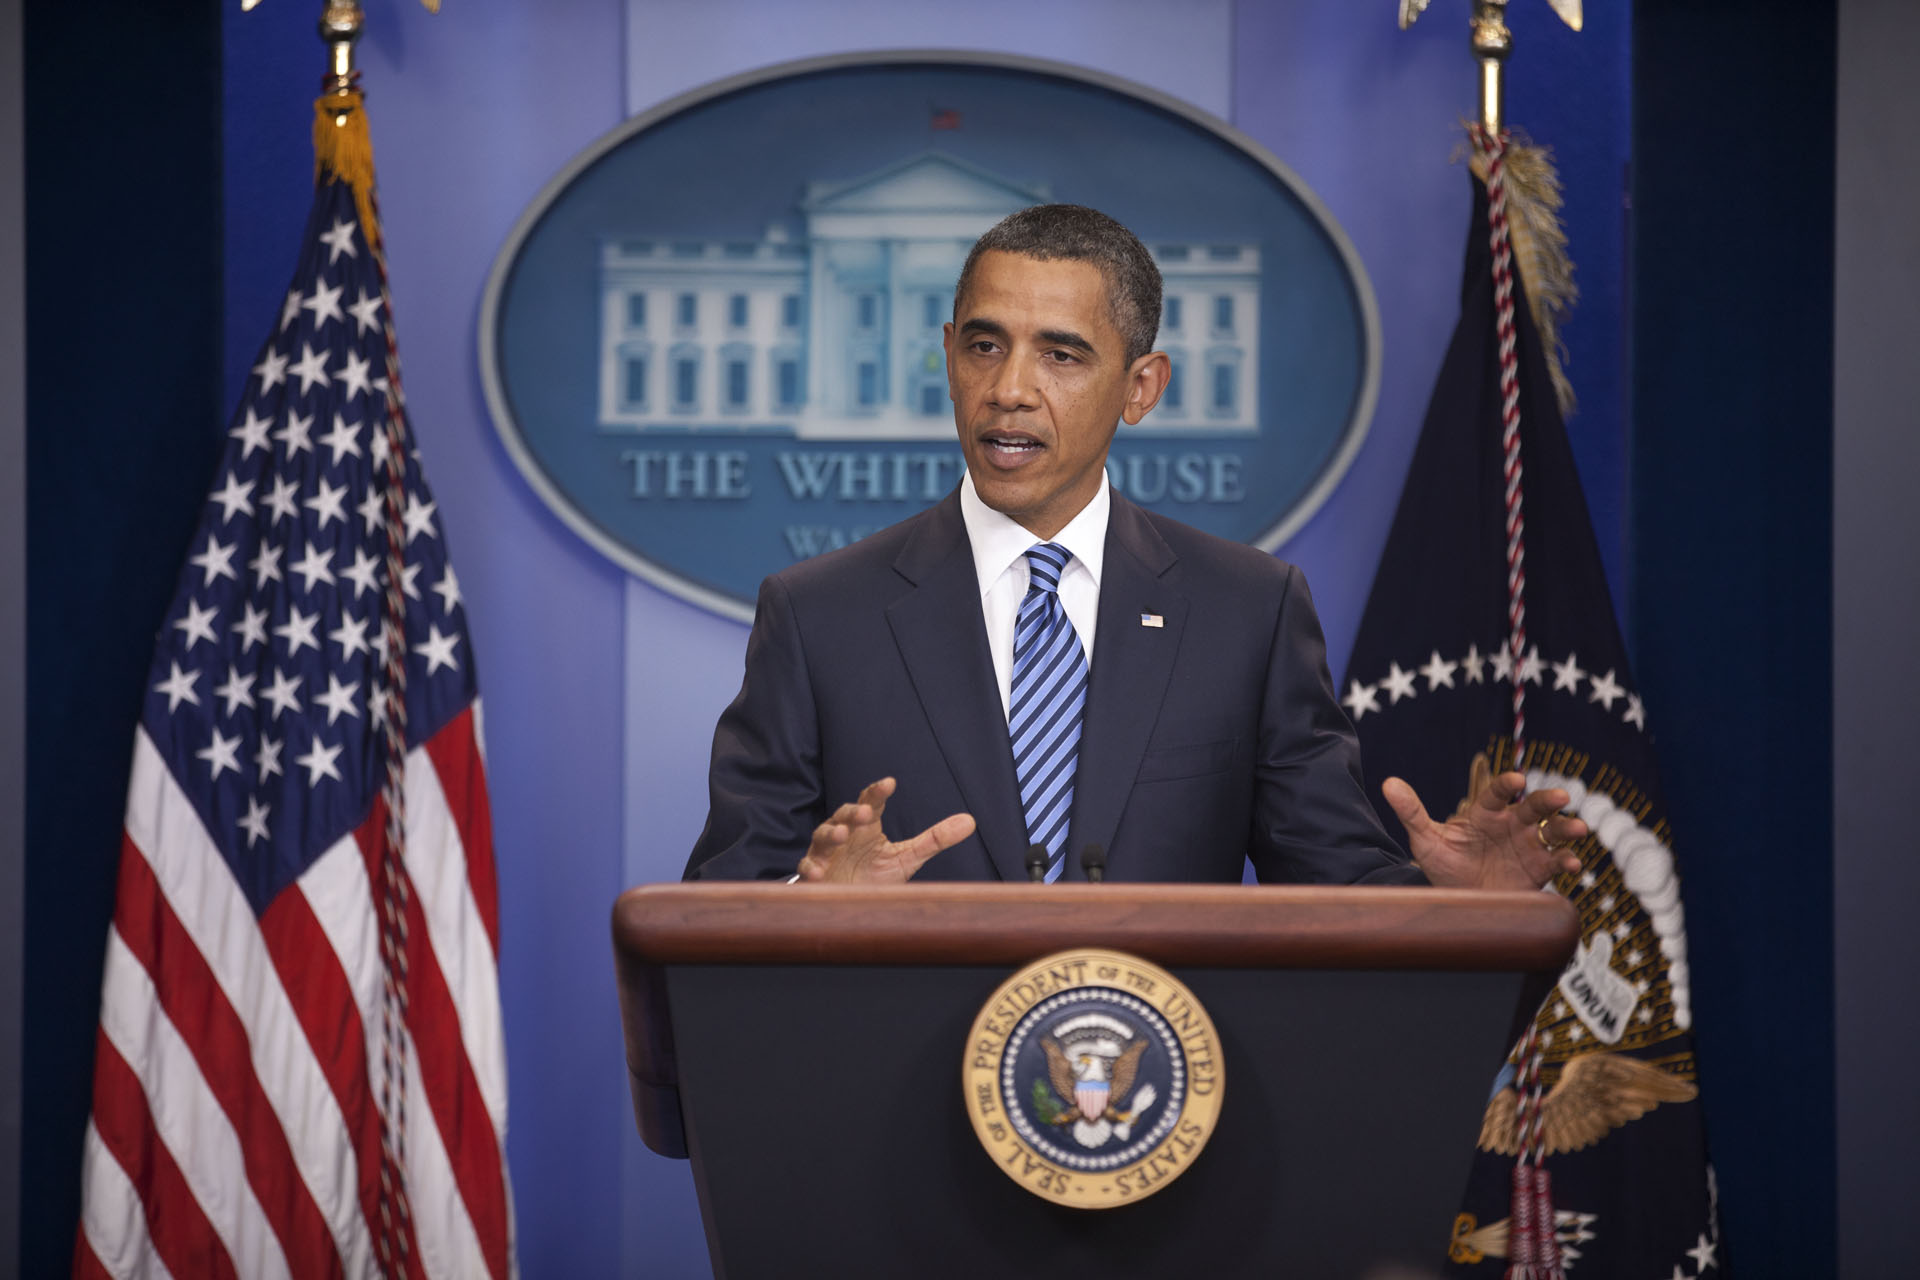 President Obama Press Conference the Status of the Deficit Negotiations